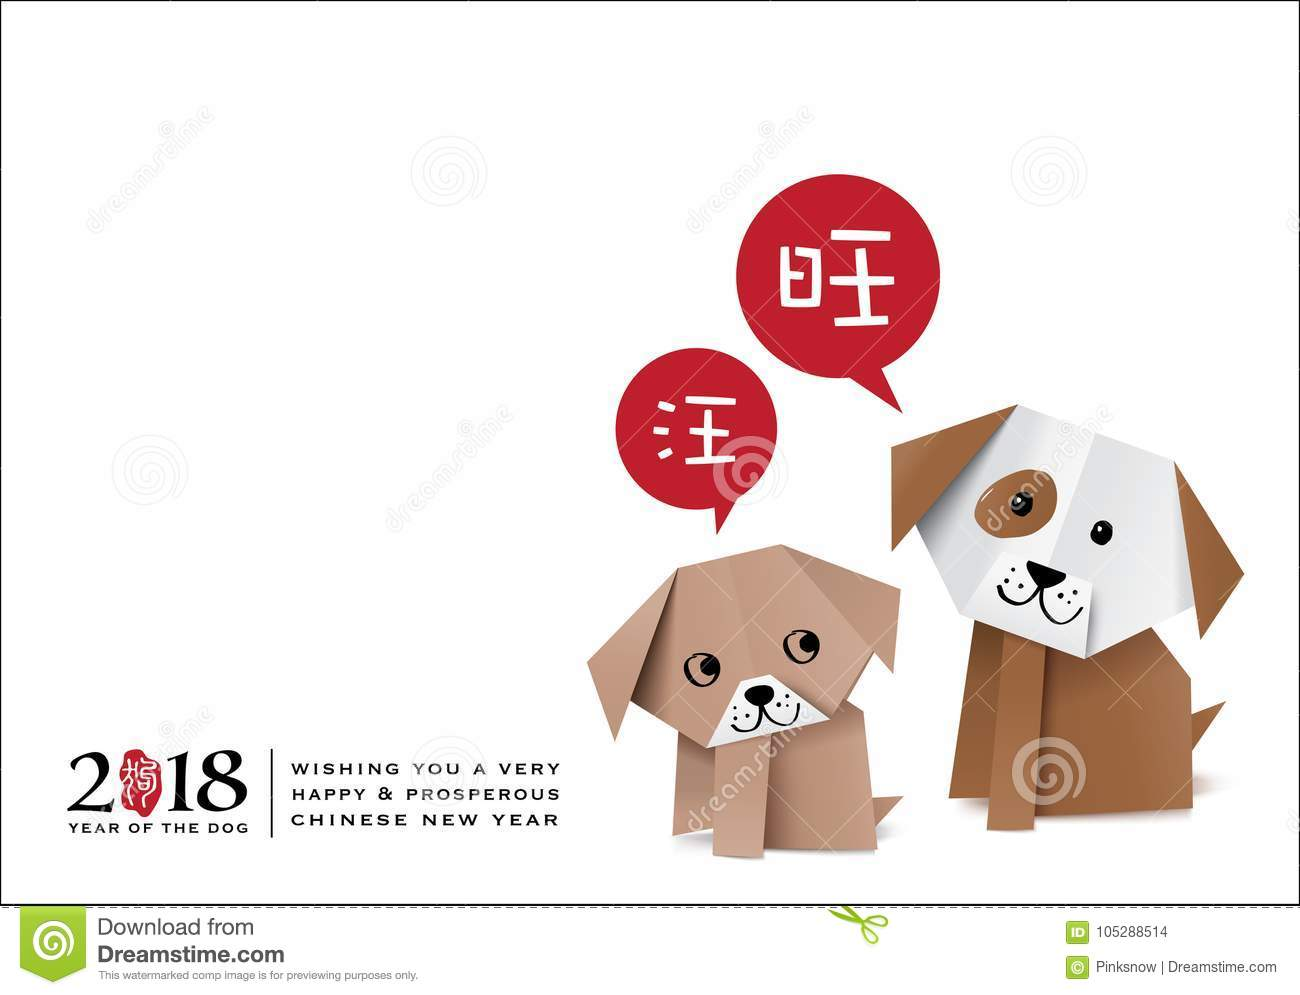 2018 Chinese New Year Greeting Card With Origami Dog. Stock Vector ...